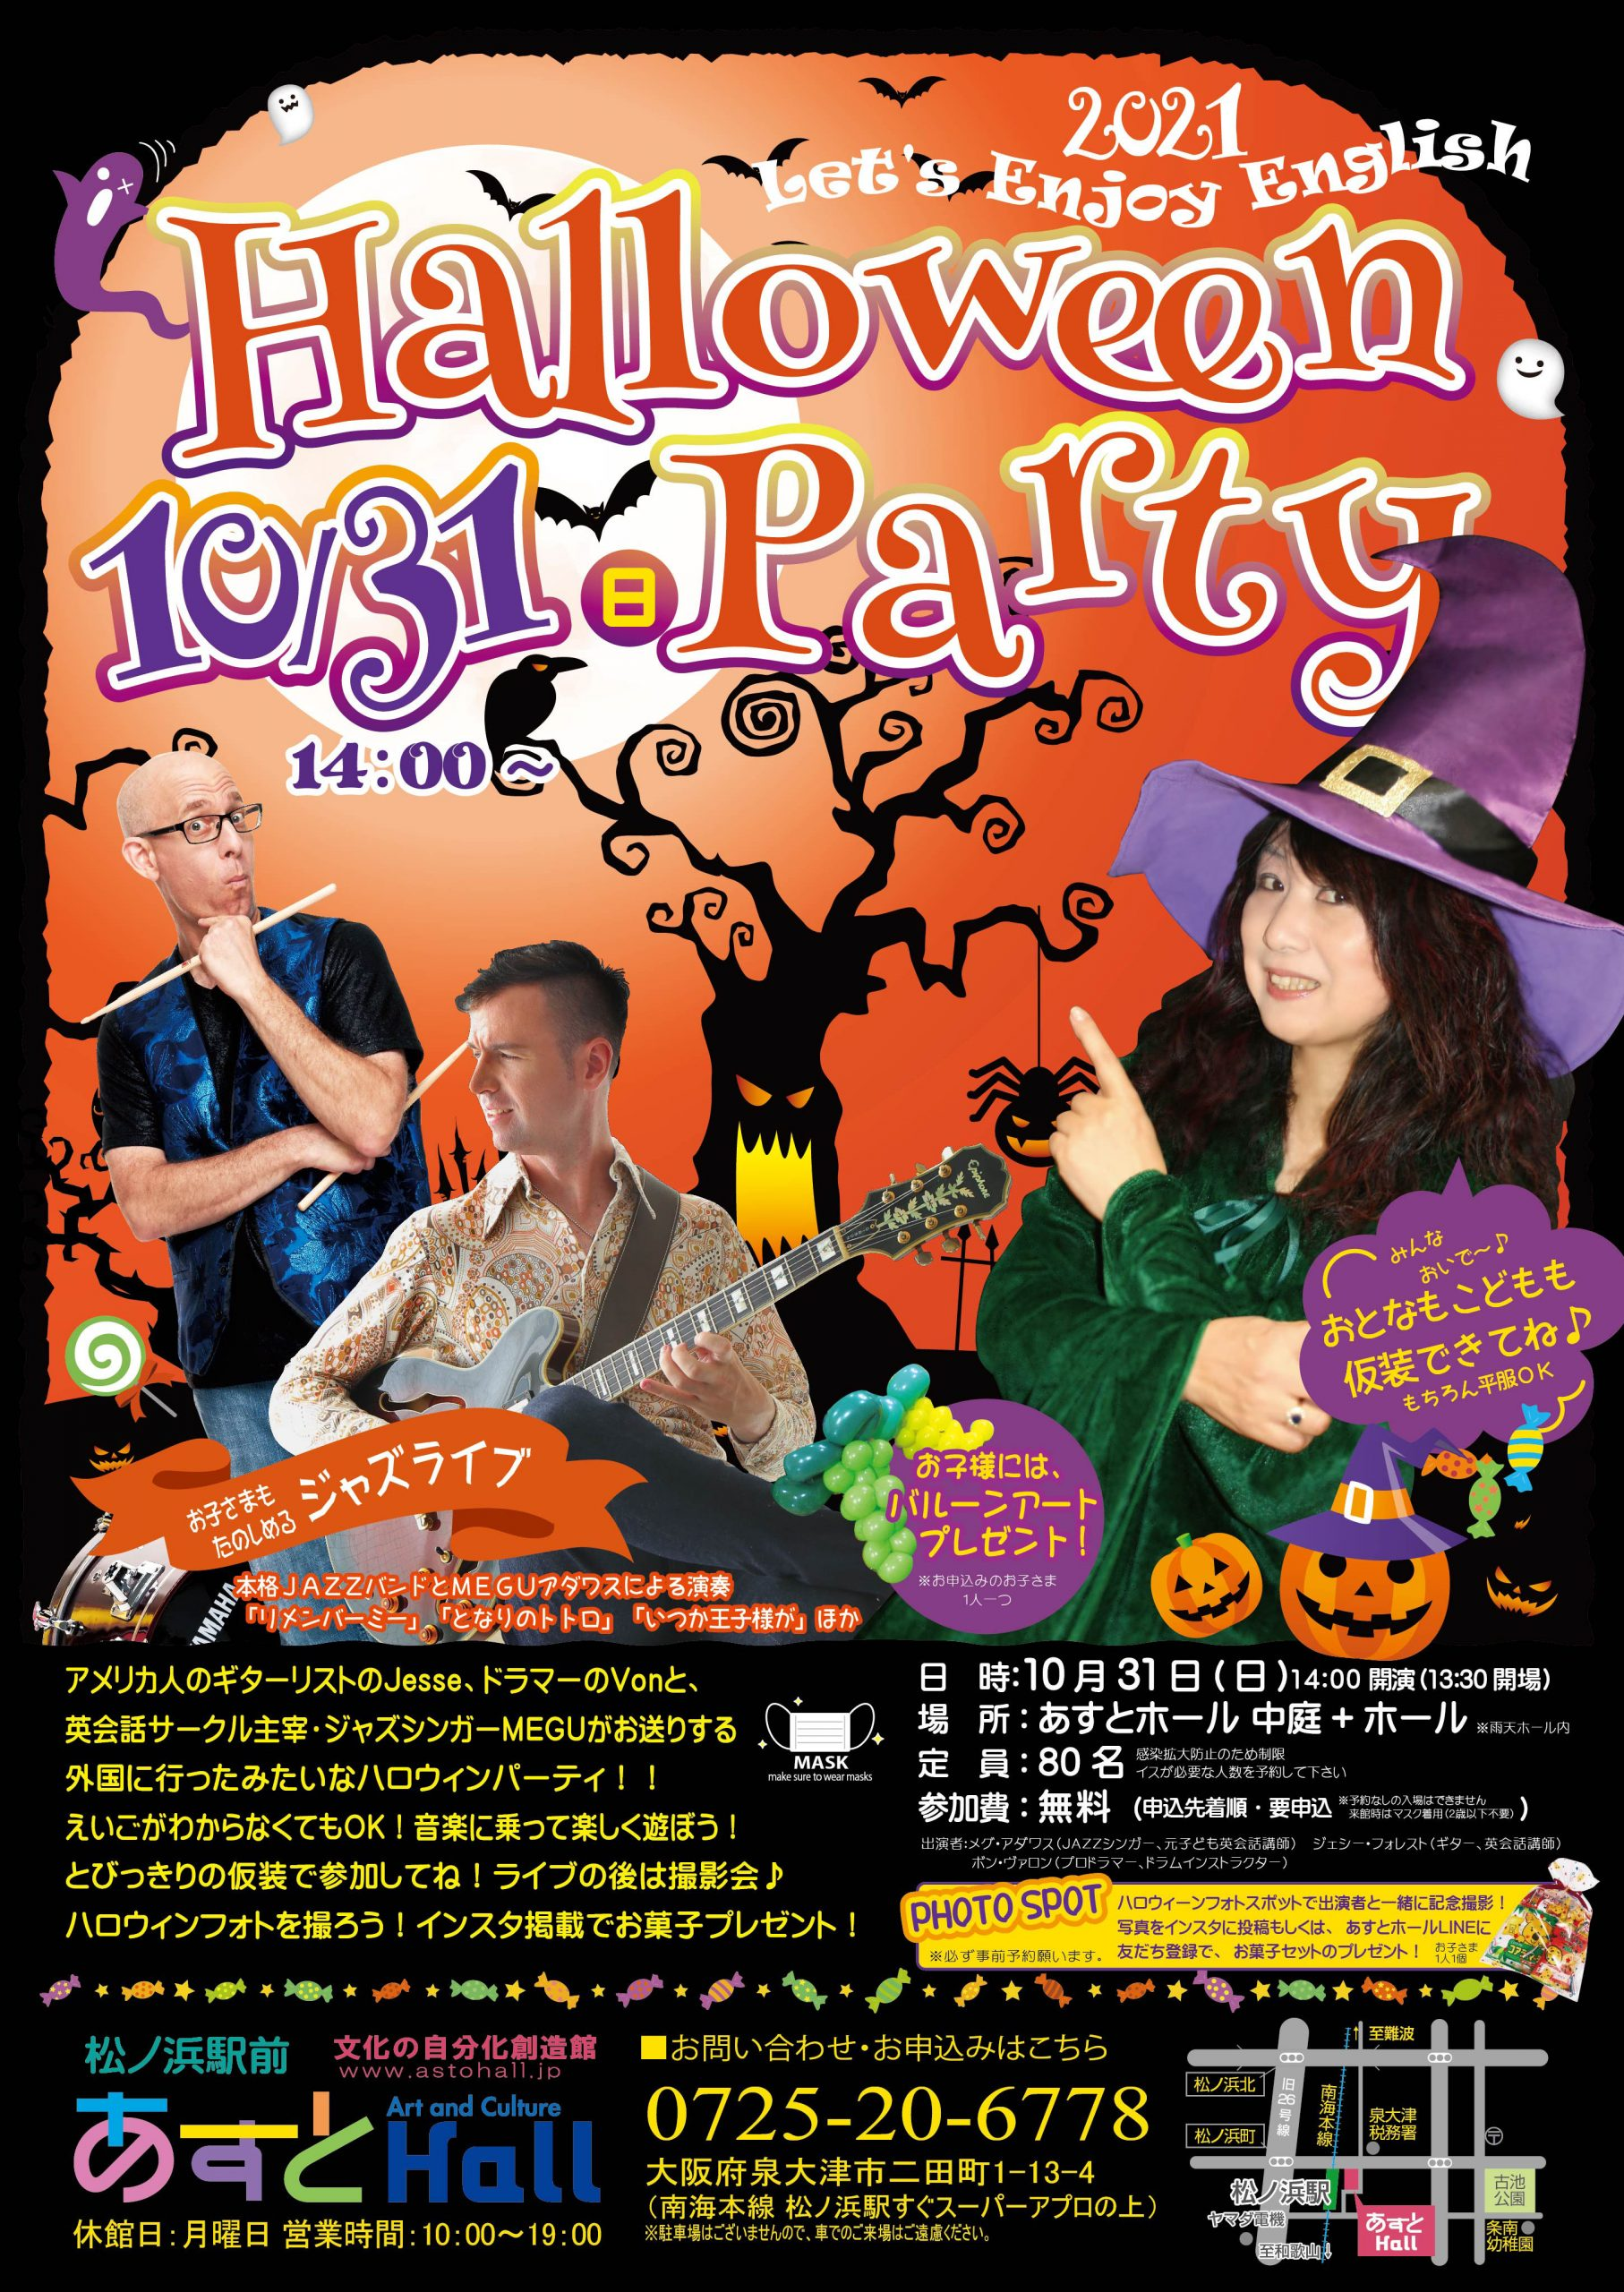 <font size=4>Let's Enjoy English</font><br>HALLOWEEN PARTY 2021